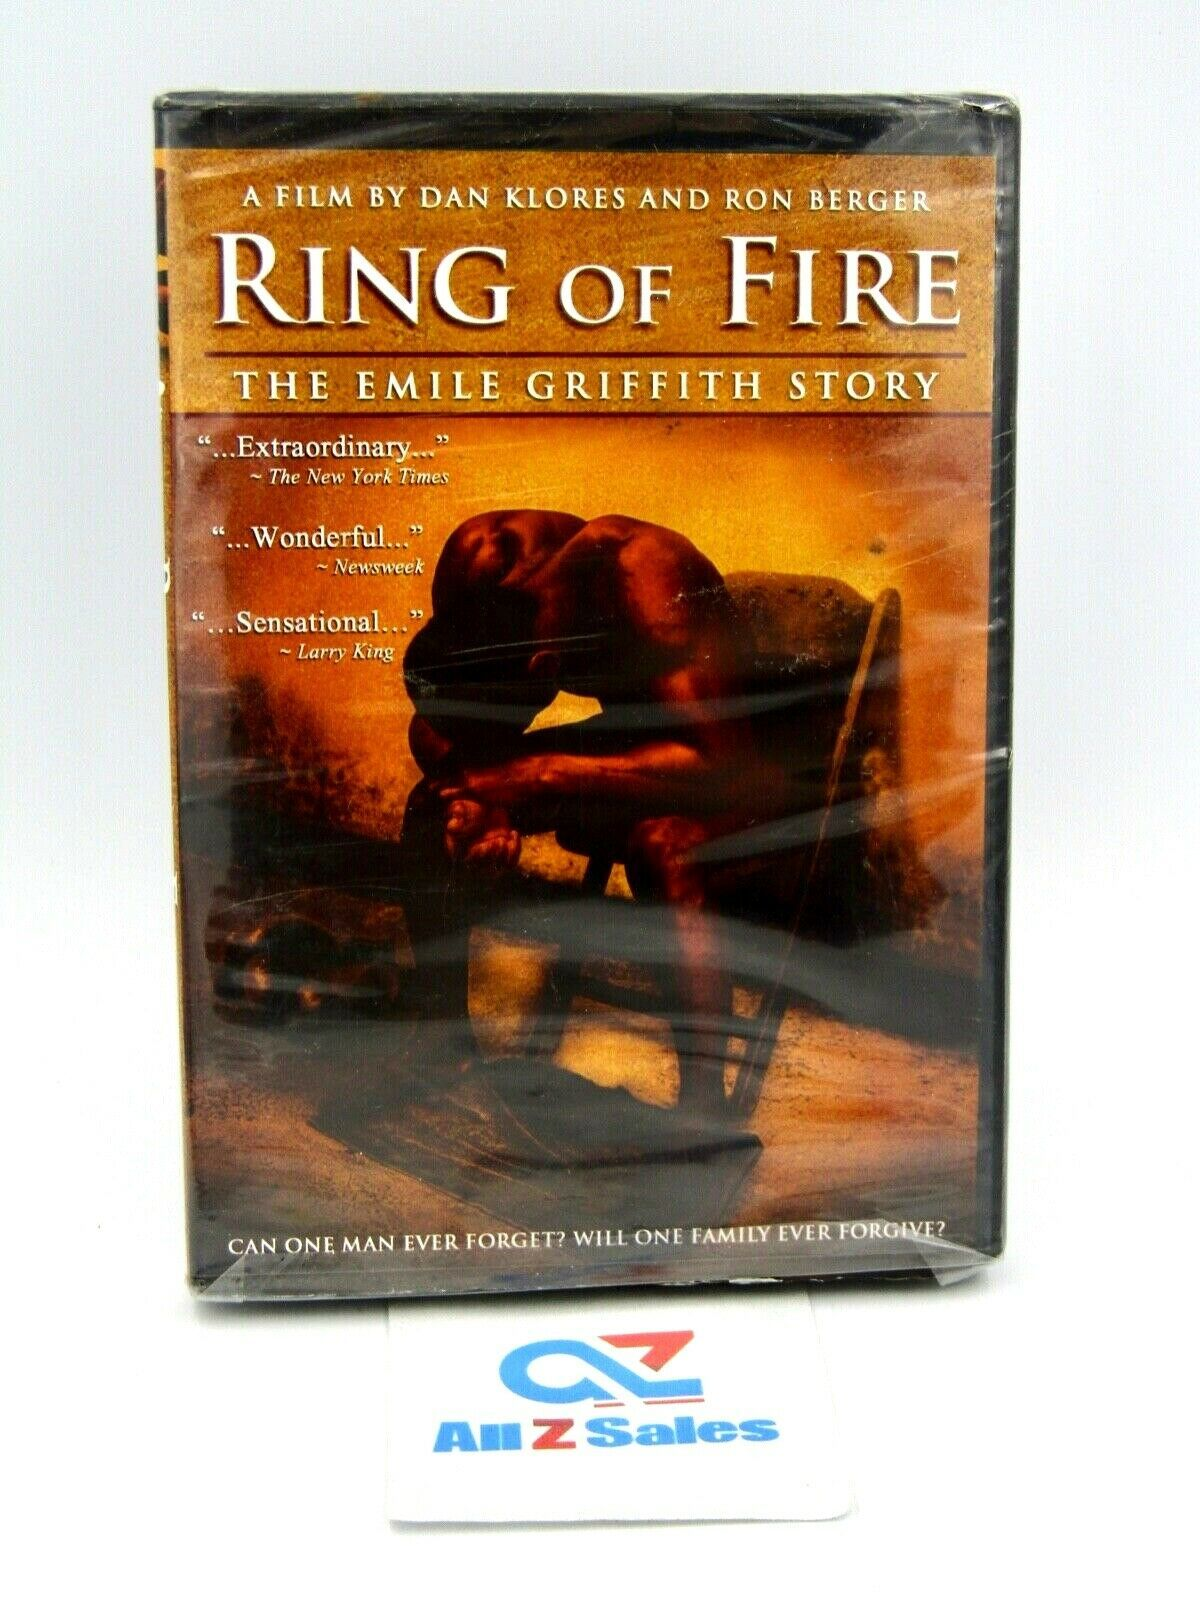 Primary image for Ring Of Fire - The Emile Griffith Story (DVD, 2005) BRAND NEW! SEALED!